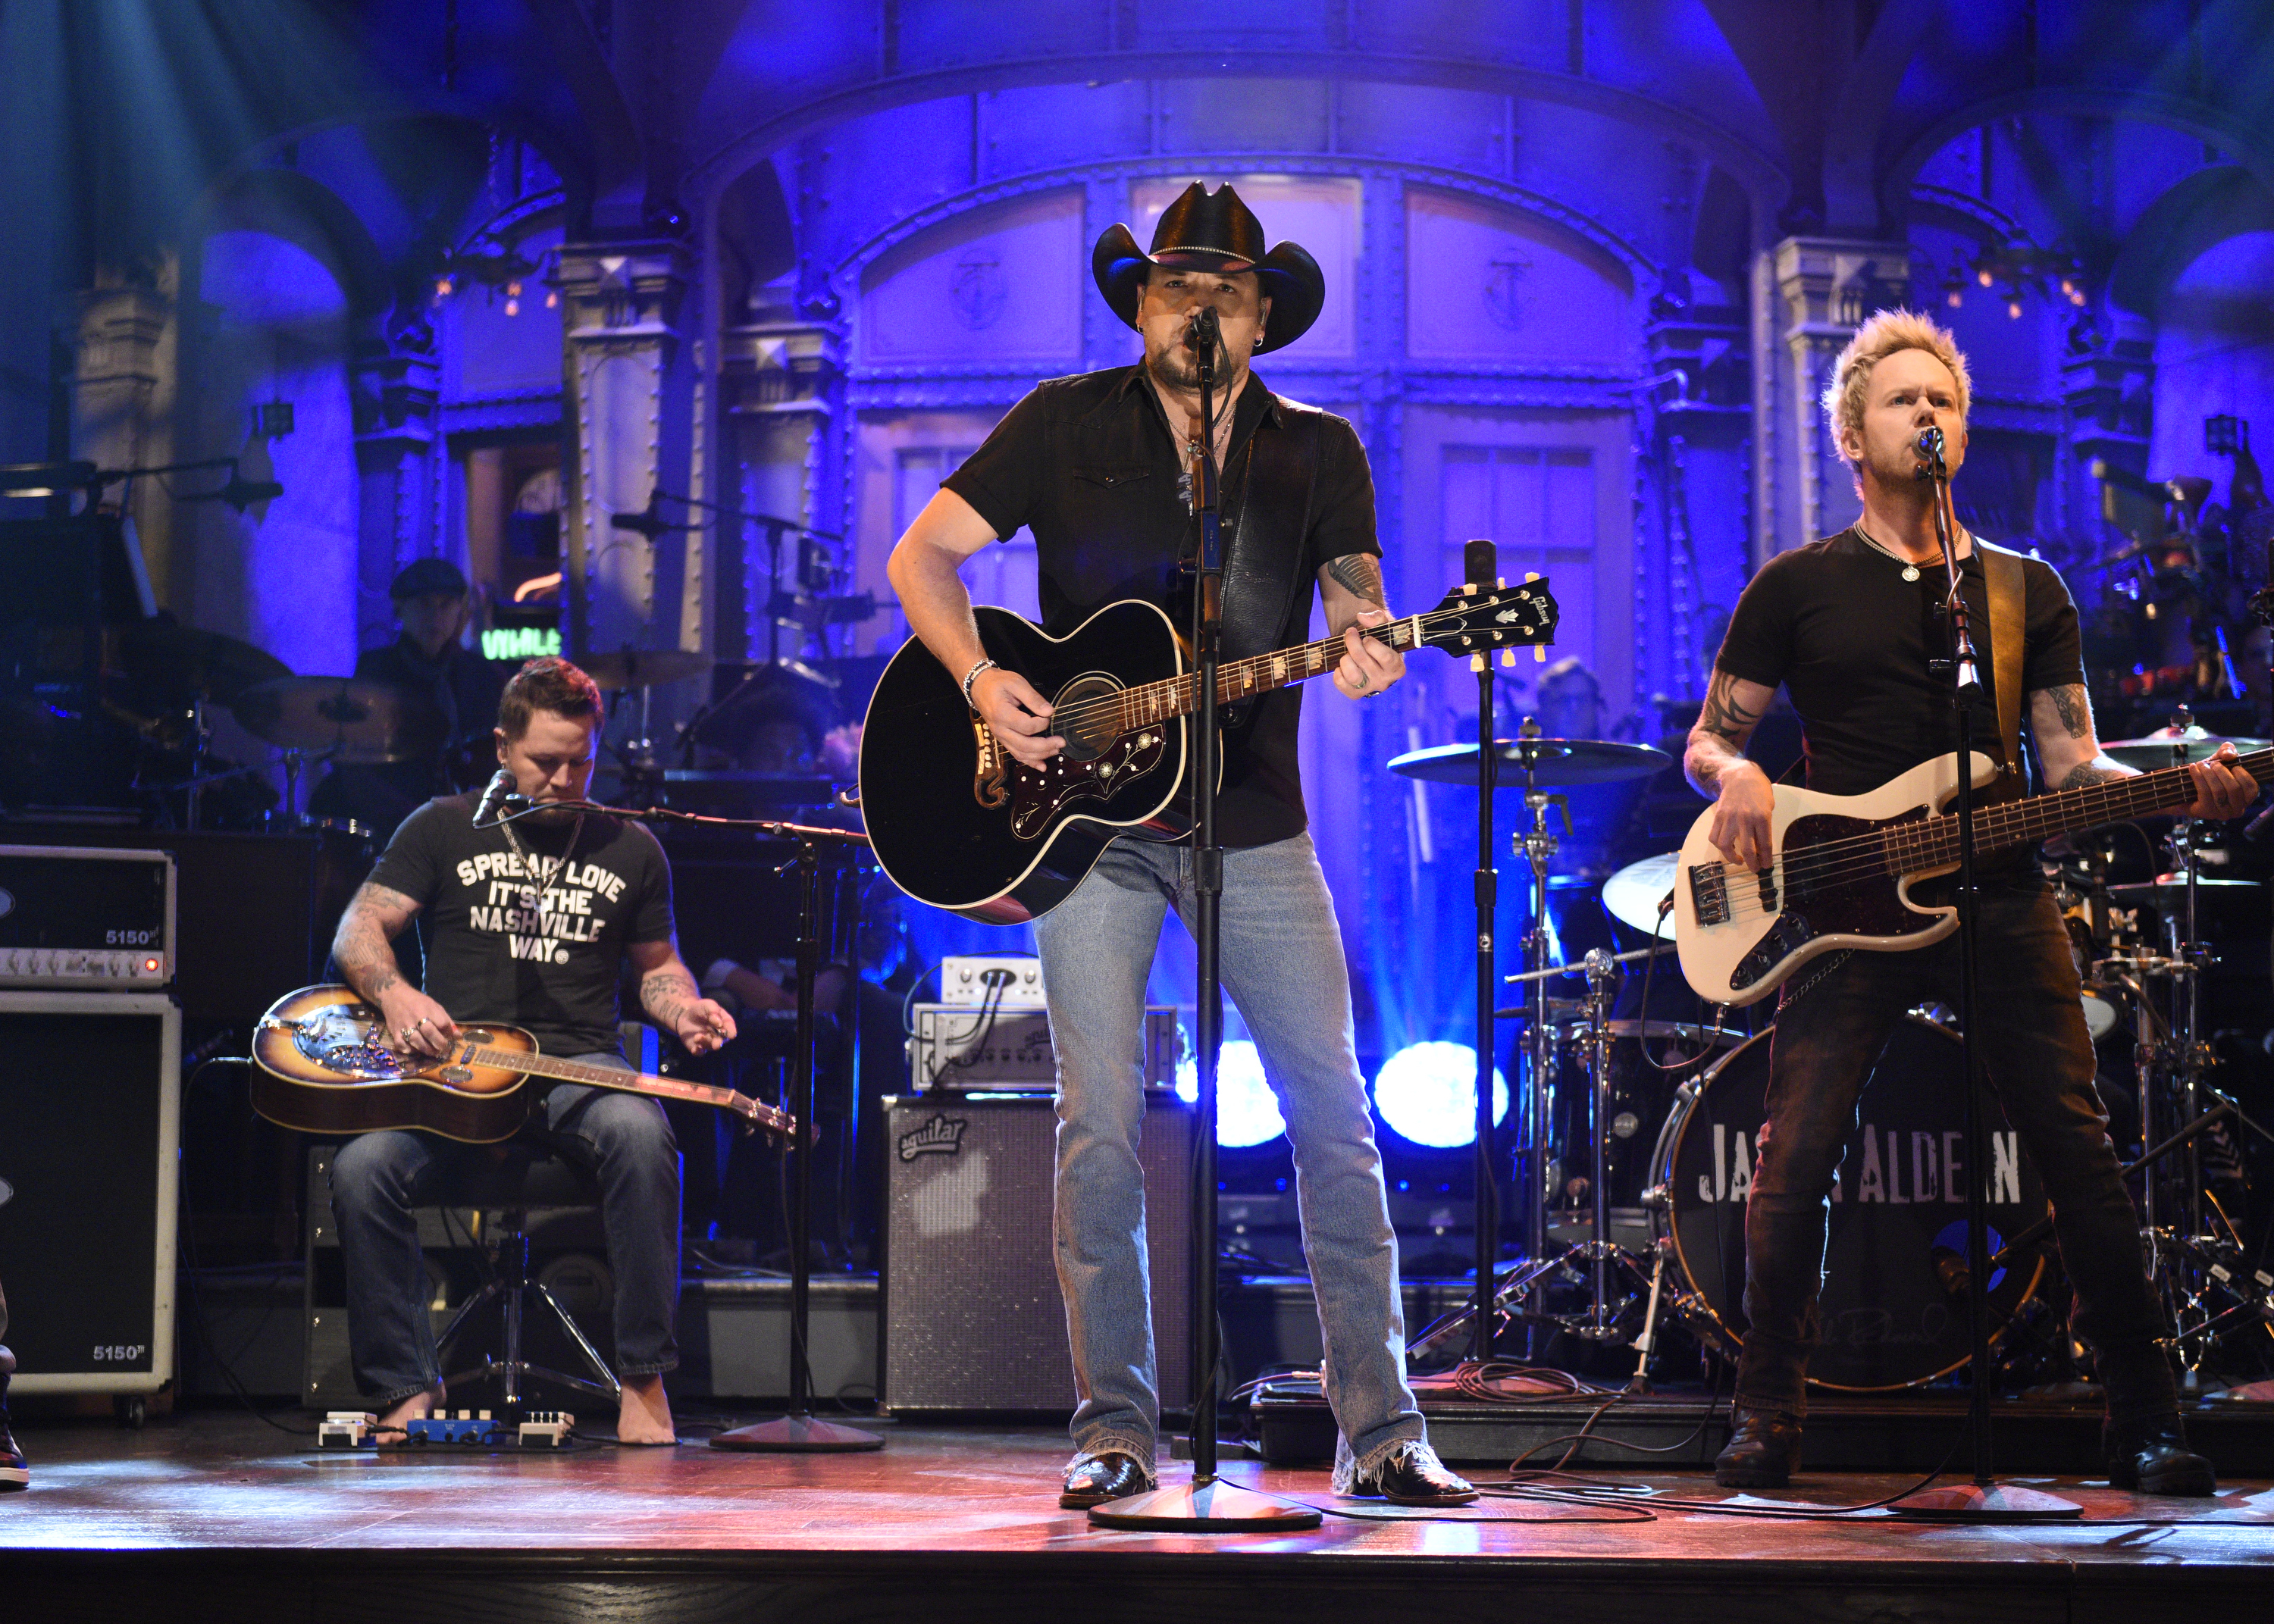 Jason Aldean performs  I Won't Back Down  on  Saturday Night Live  on Oct. 7, 2017.